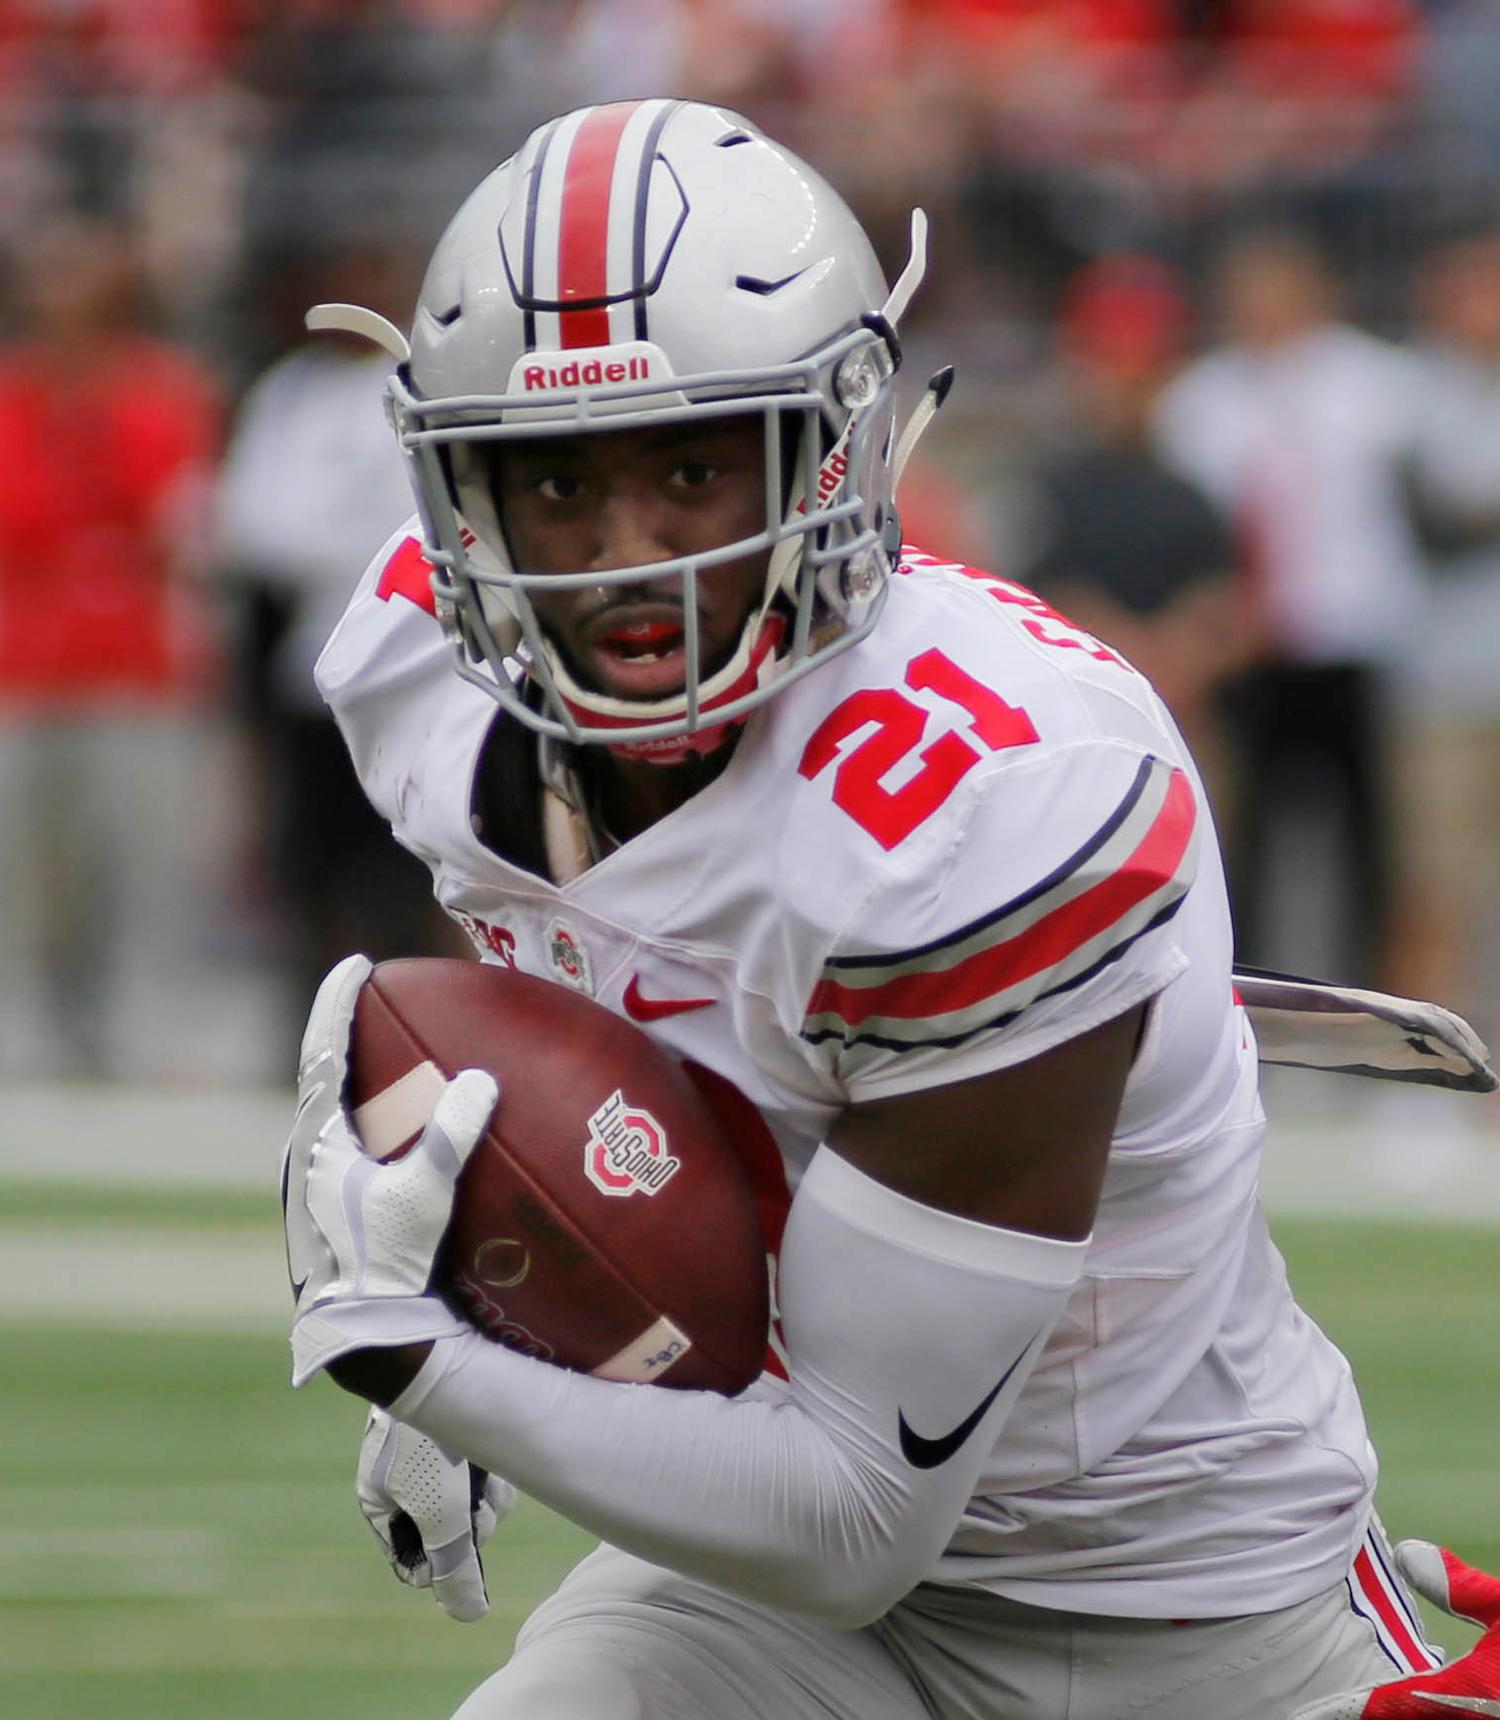 FILE - In this April 15, 2017, file photo, Ohio State wide receiver Parris Campbell runs the ball during their NCAA college spring football game in Columbus, Ohio. Campbell will be back with the Buckeyes next season. (AP Photo/Jay LaPrete, File)